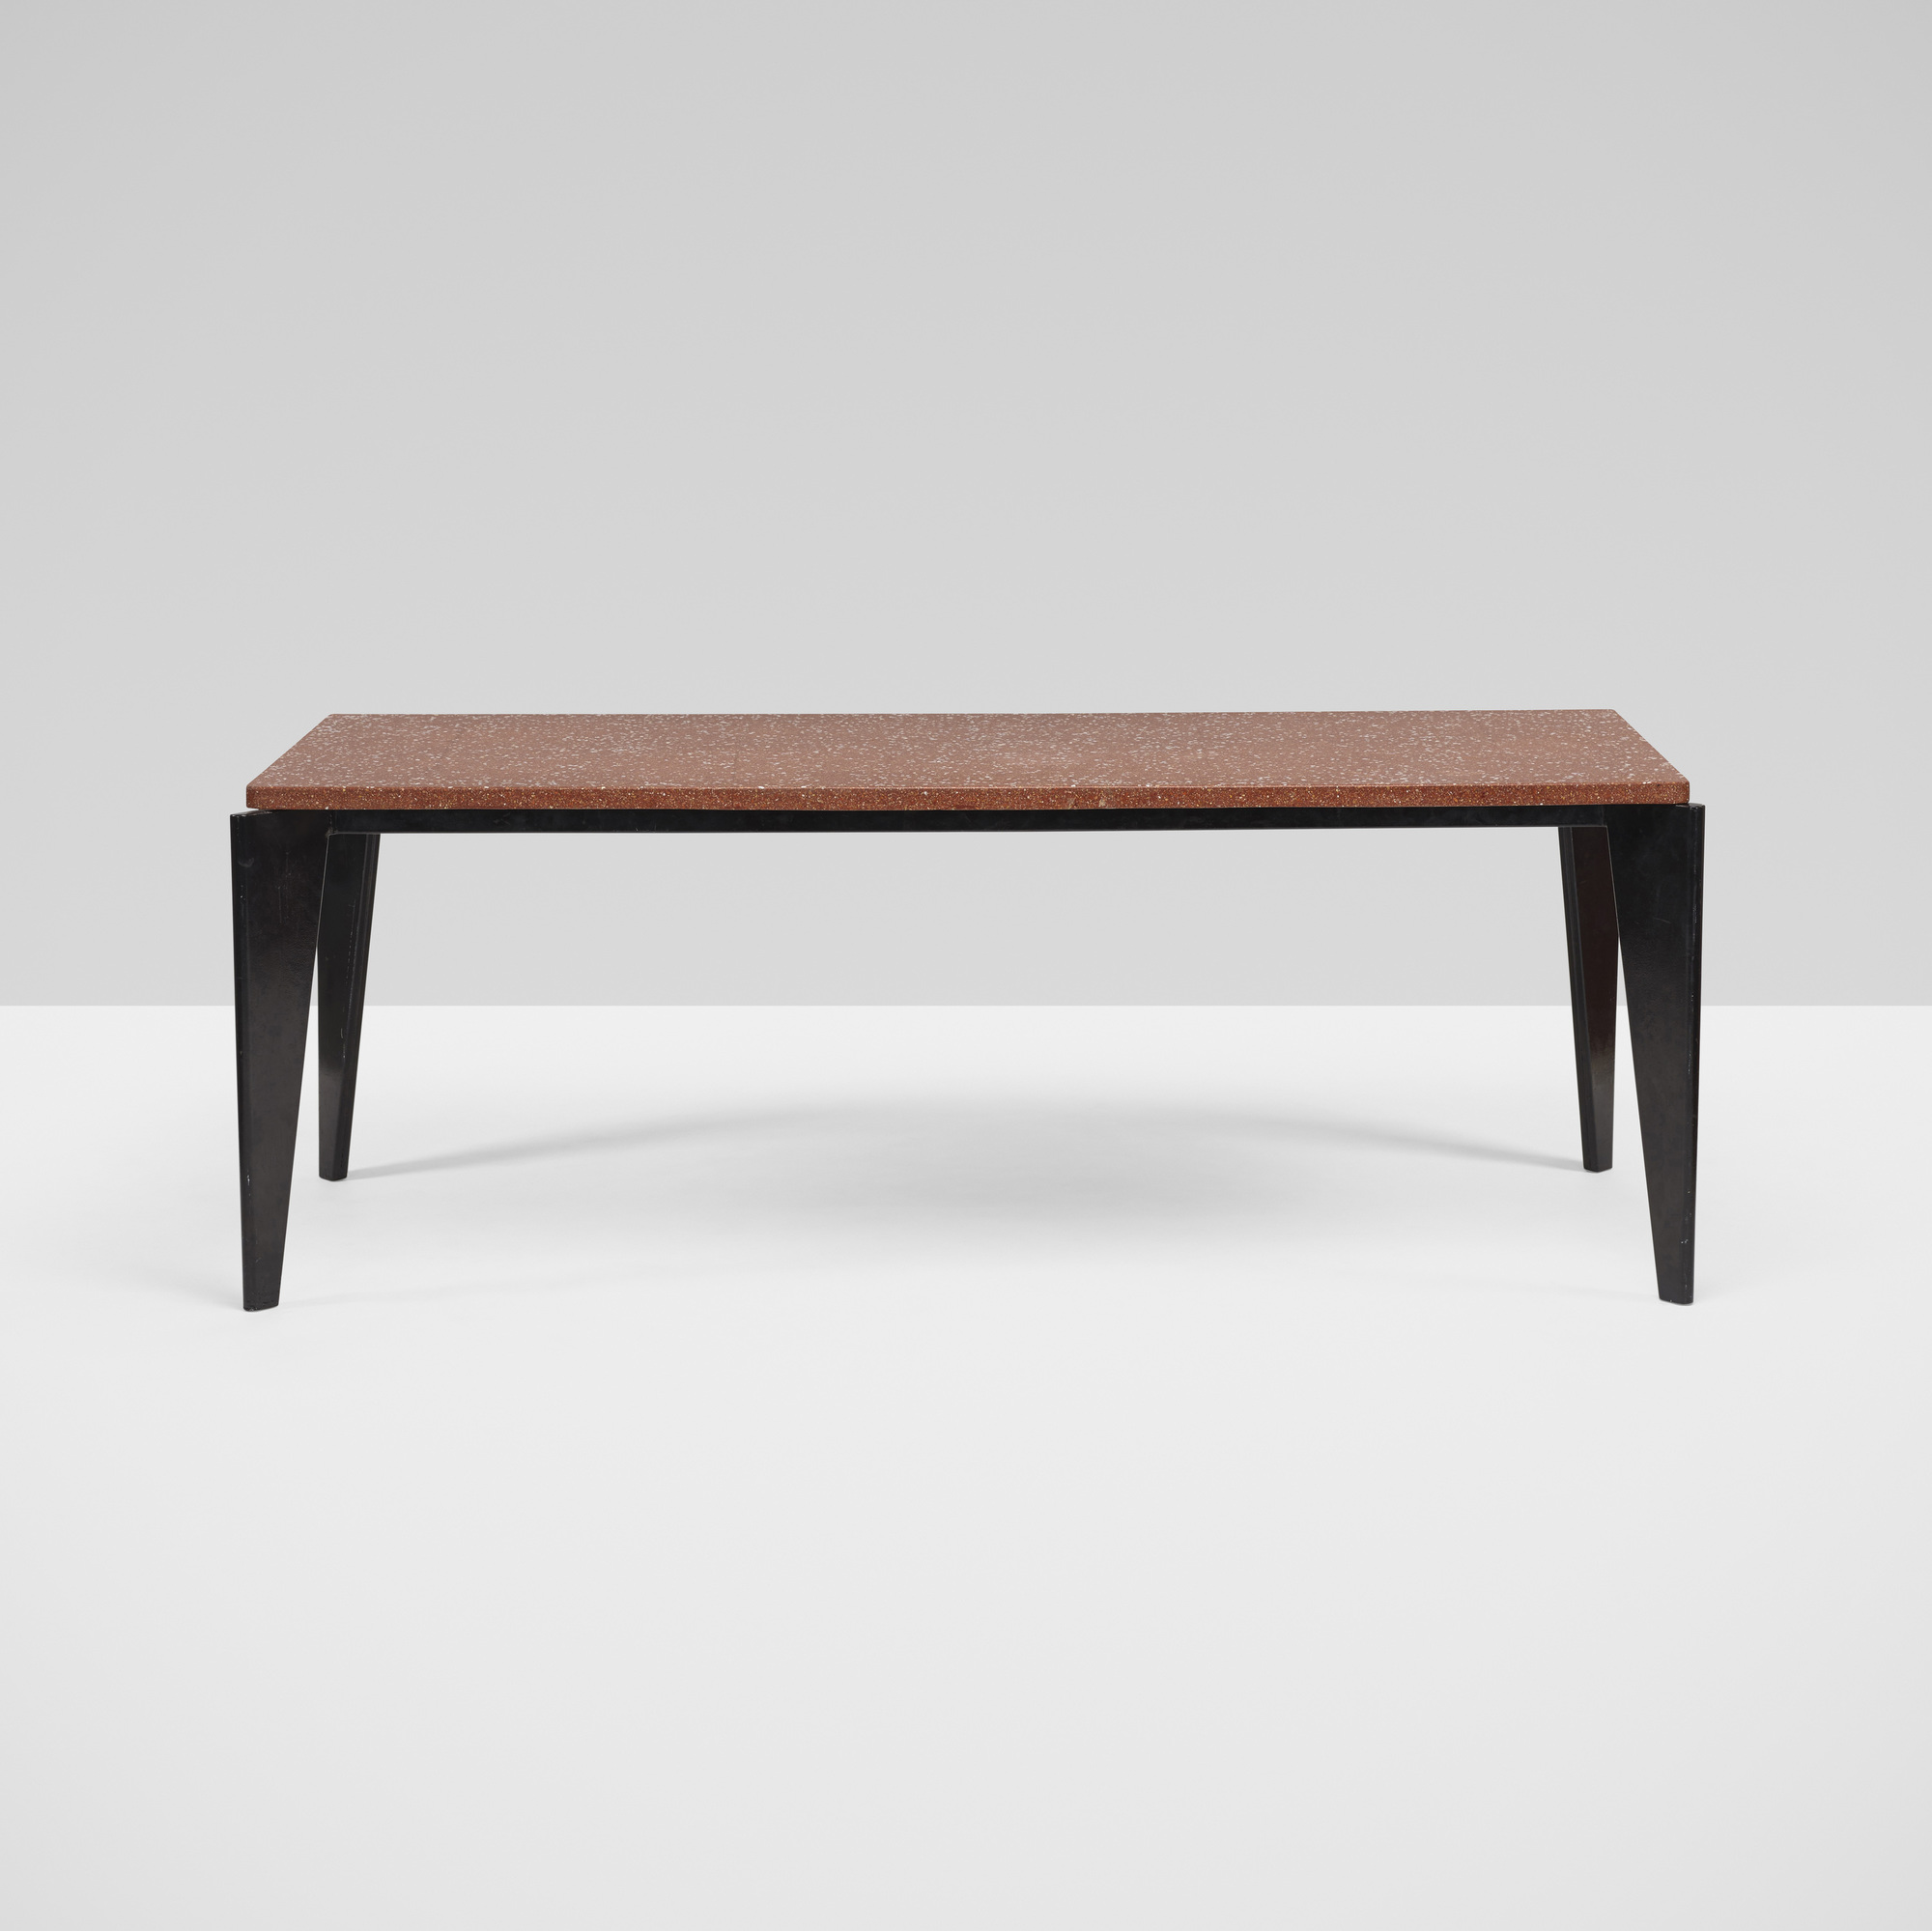 135 Jean Prouv Flavigny Dining Table